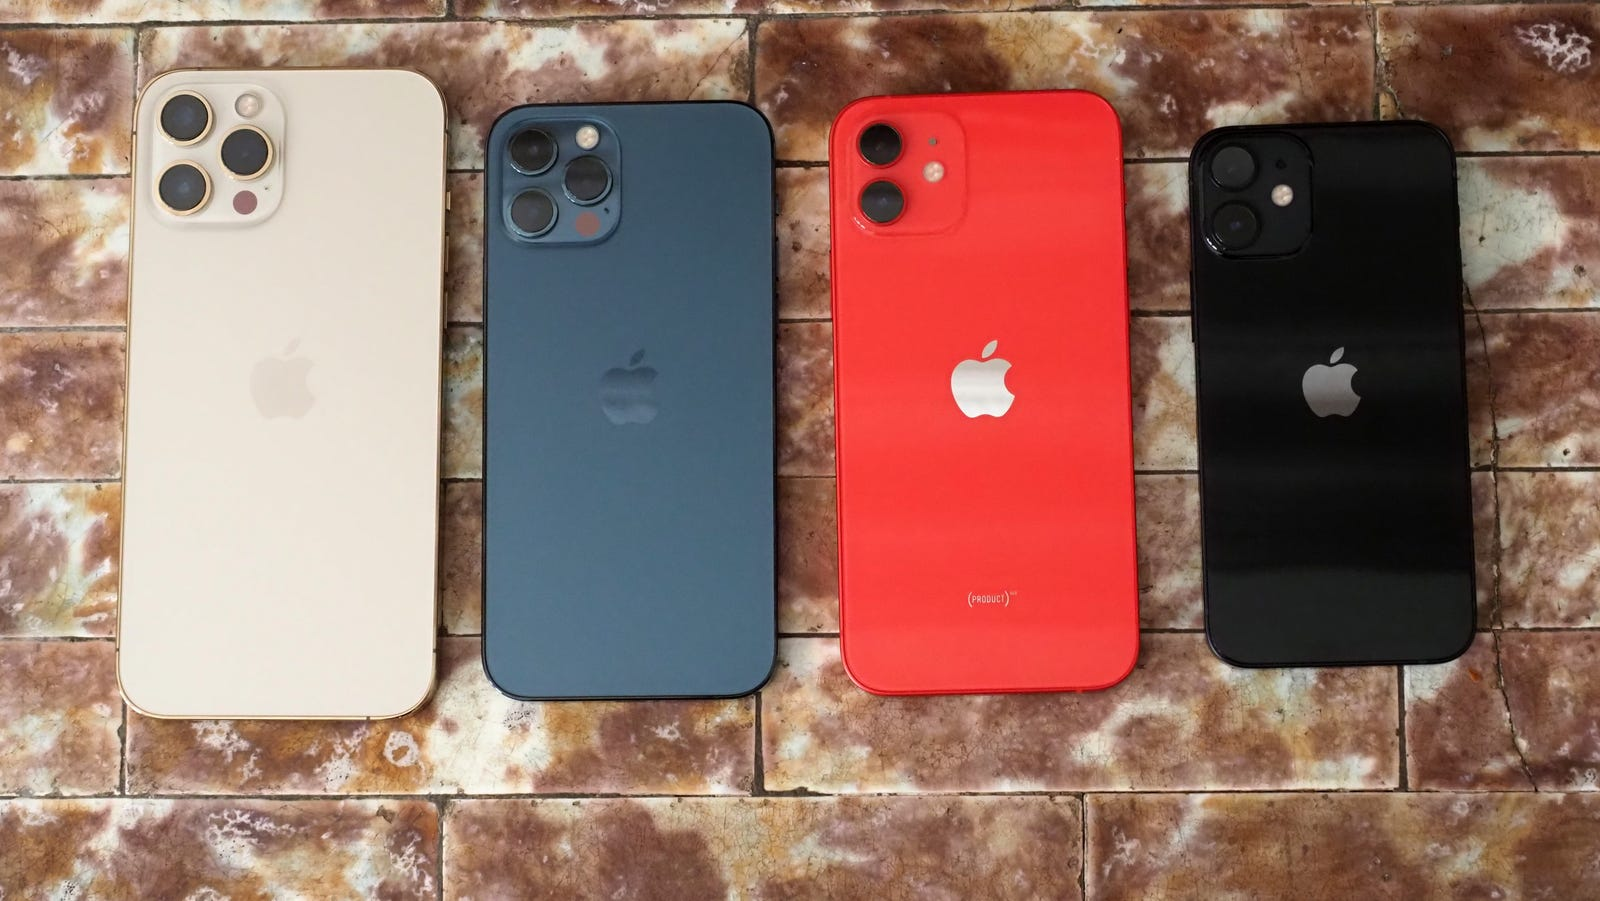 From left to right: iPhone 12 Pro Max, iPhone 12 Pro, iPhone 12, iPhone 12 Mini